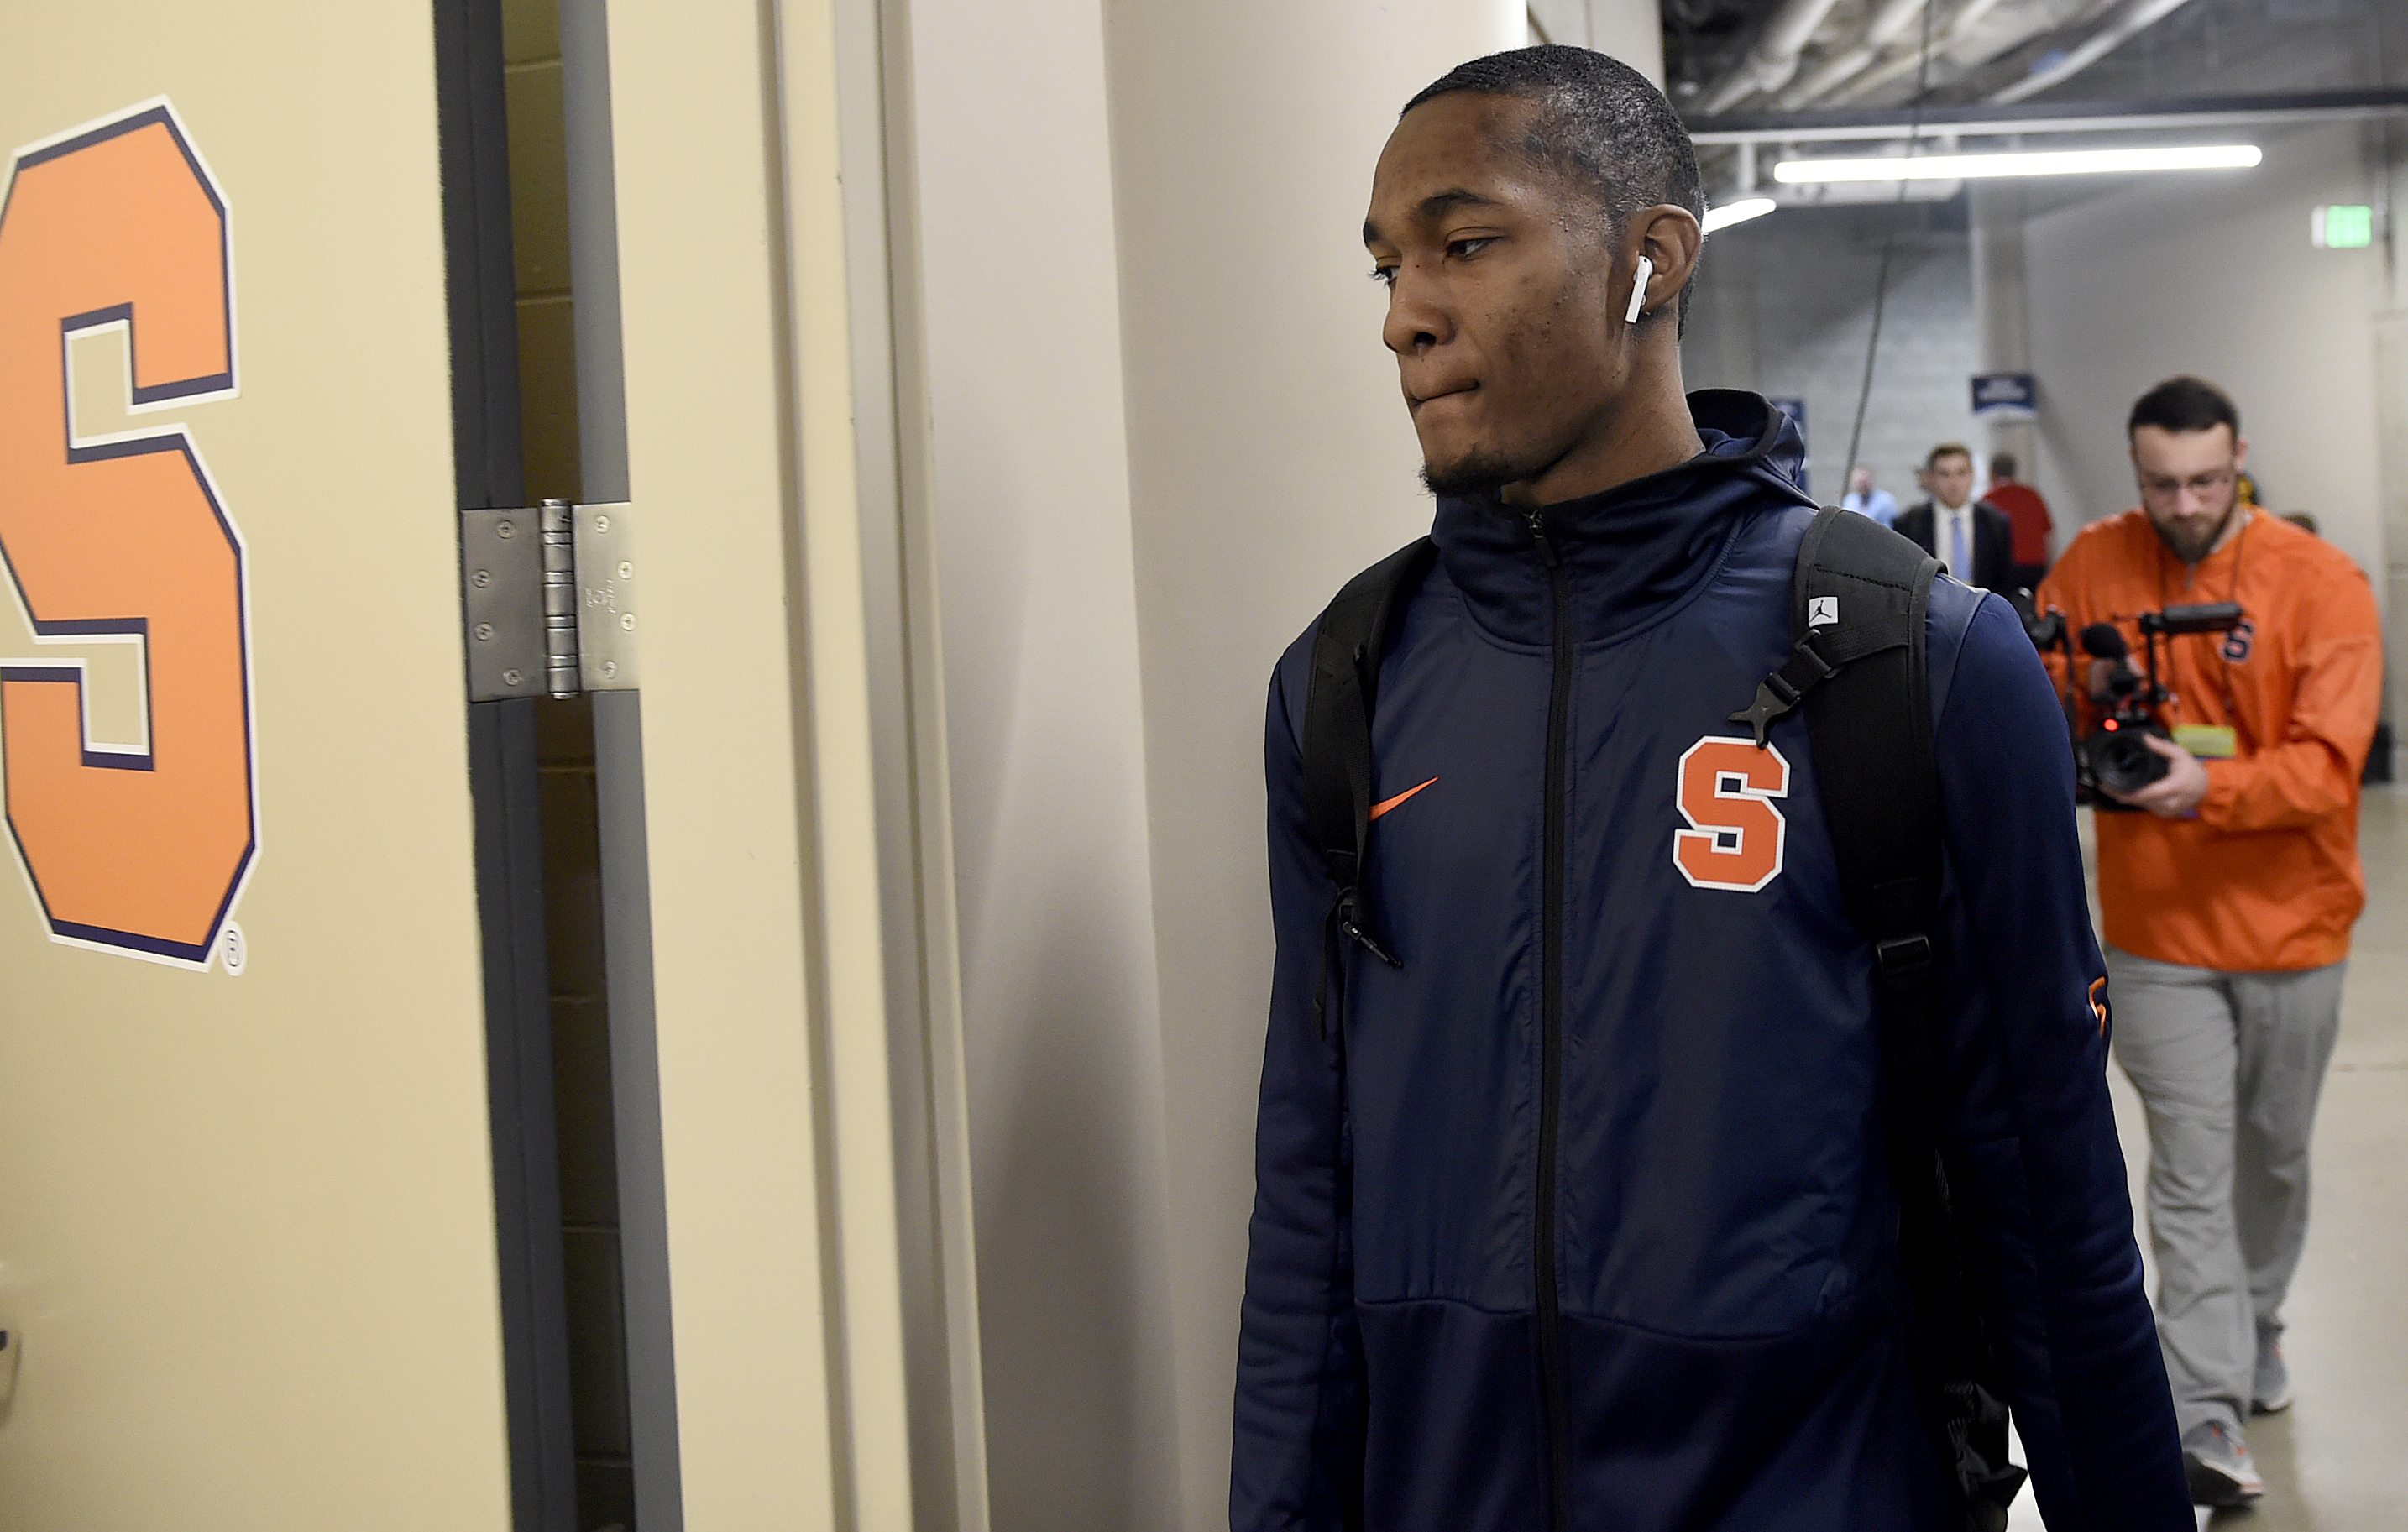 Syracuse's Jalen Carey gets chance to gain experience, build momentum this summer